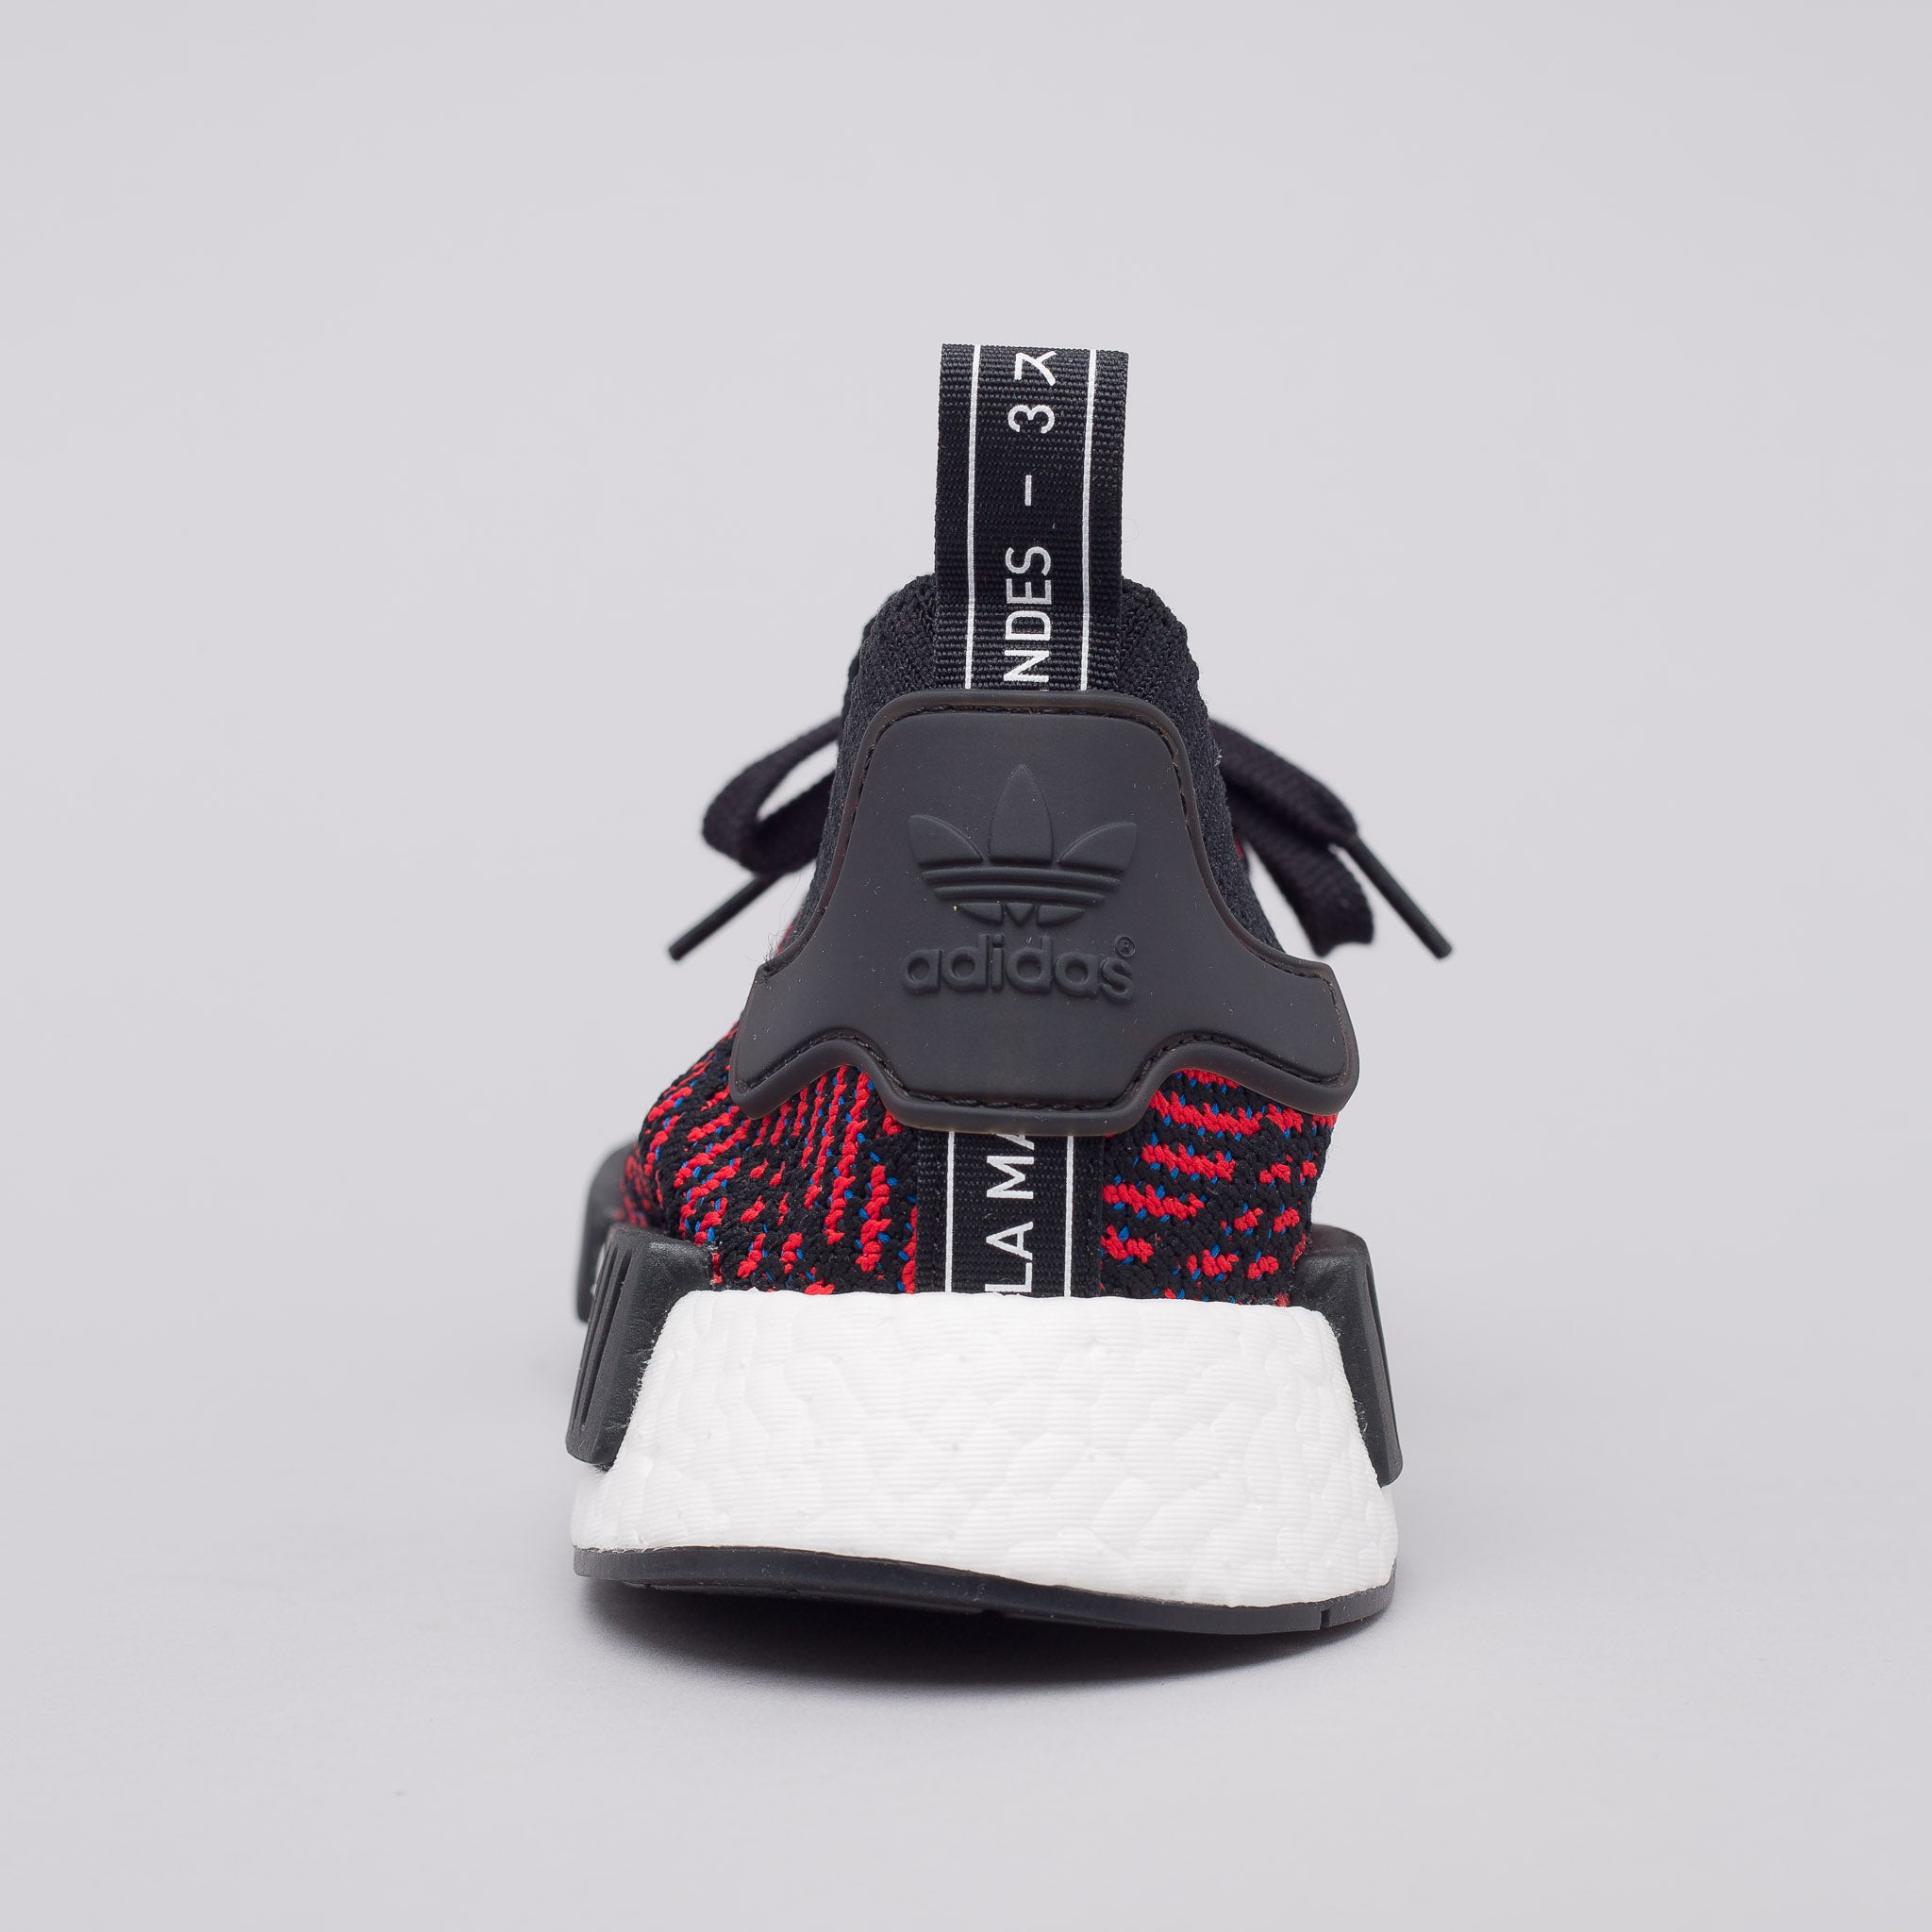 Get Ready, Red adidas Originals NMD R1 Drop 10am Culture Kings